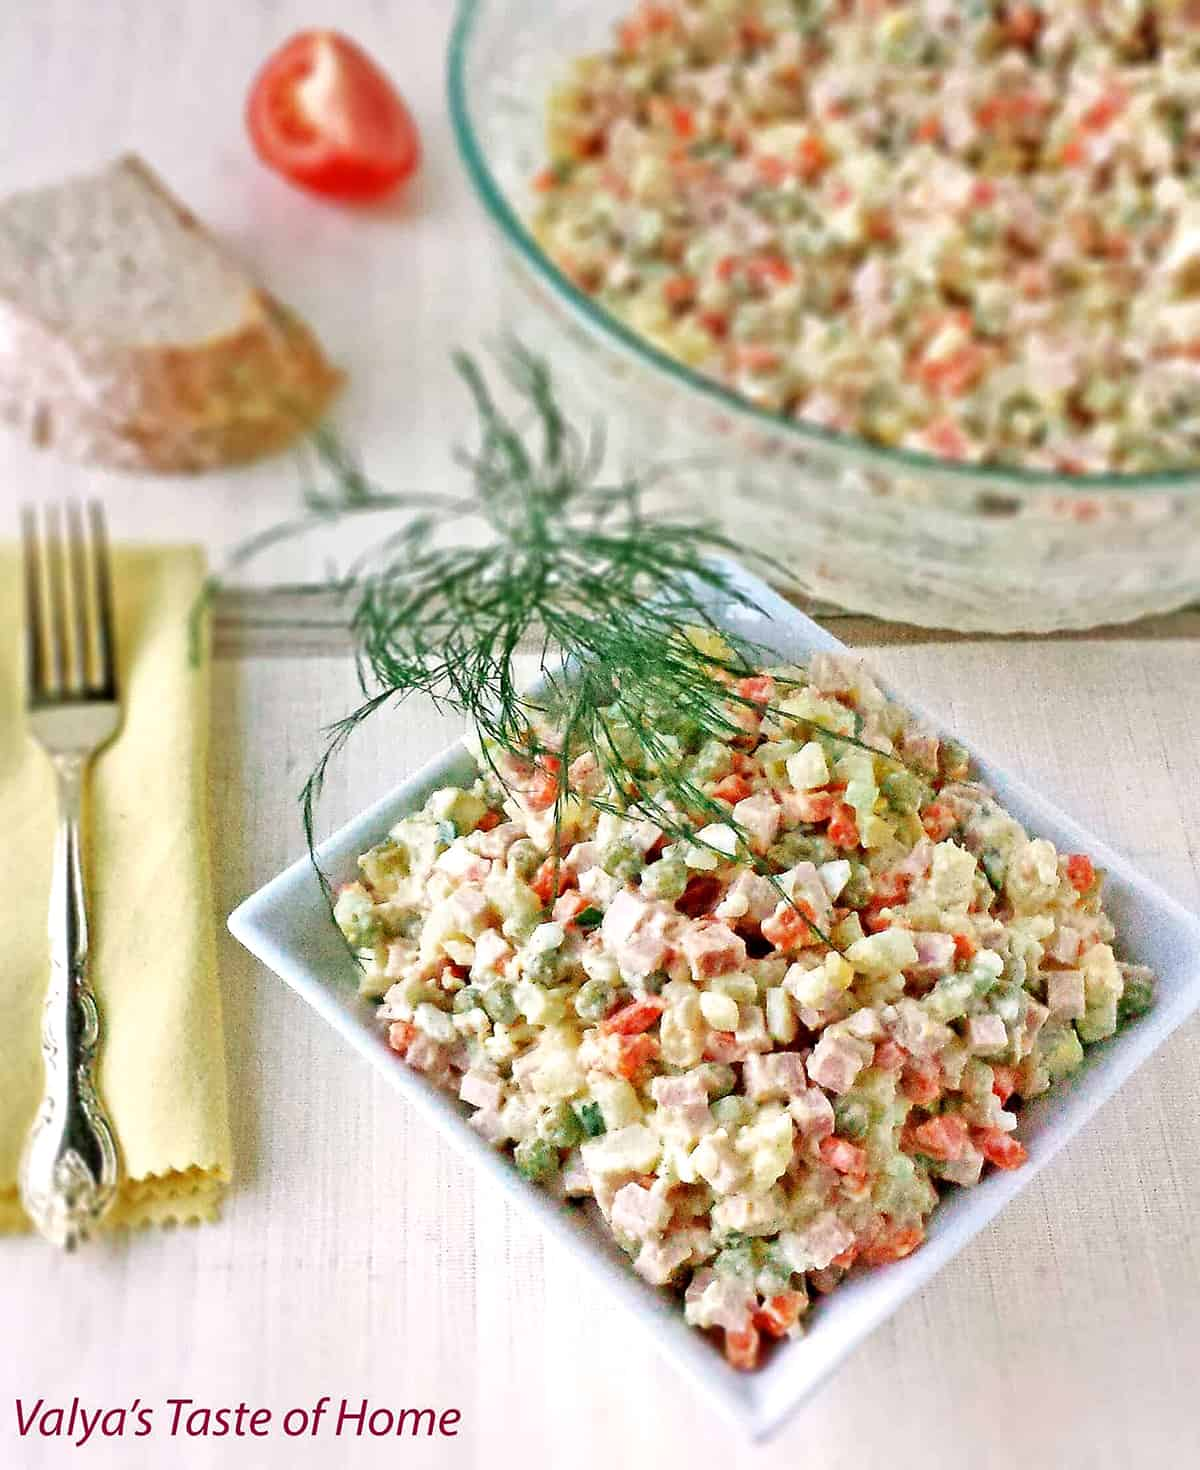 This Classic Potato Salad Recipe (Olivie) is a must-have on any holiday table. It's very easy to make, very hearty, and craveable. Just cook some veggies and eggs, chop them up, add mayo, salt, and pepper and you have a very delicious salad.